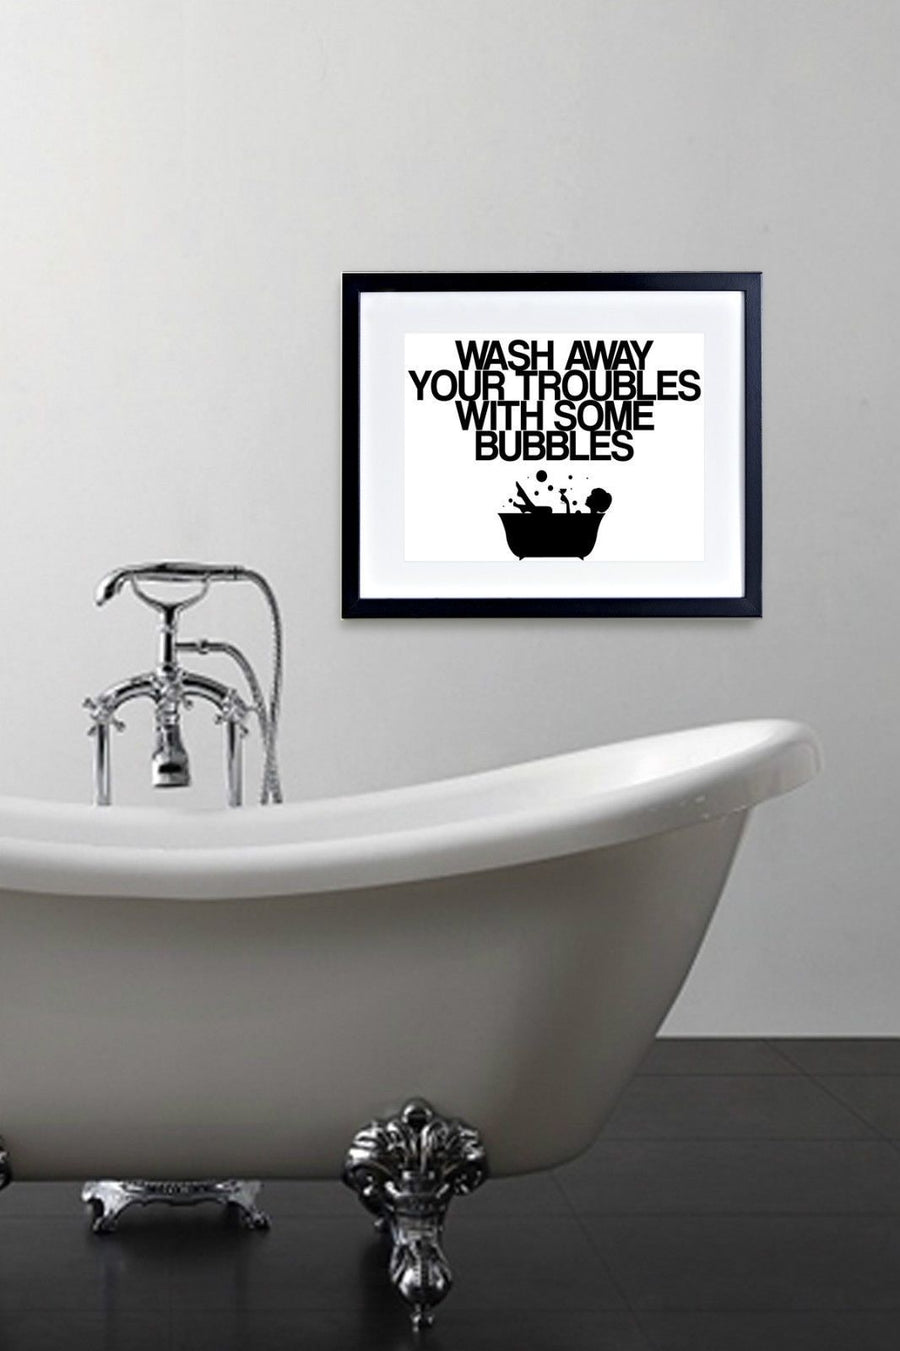 Wash Away Picture Shower Poster Print Framed Mounted Bathroom Bath Relax 233